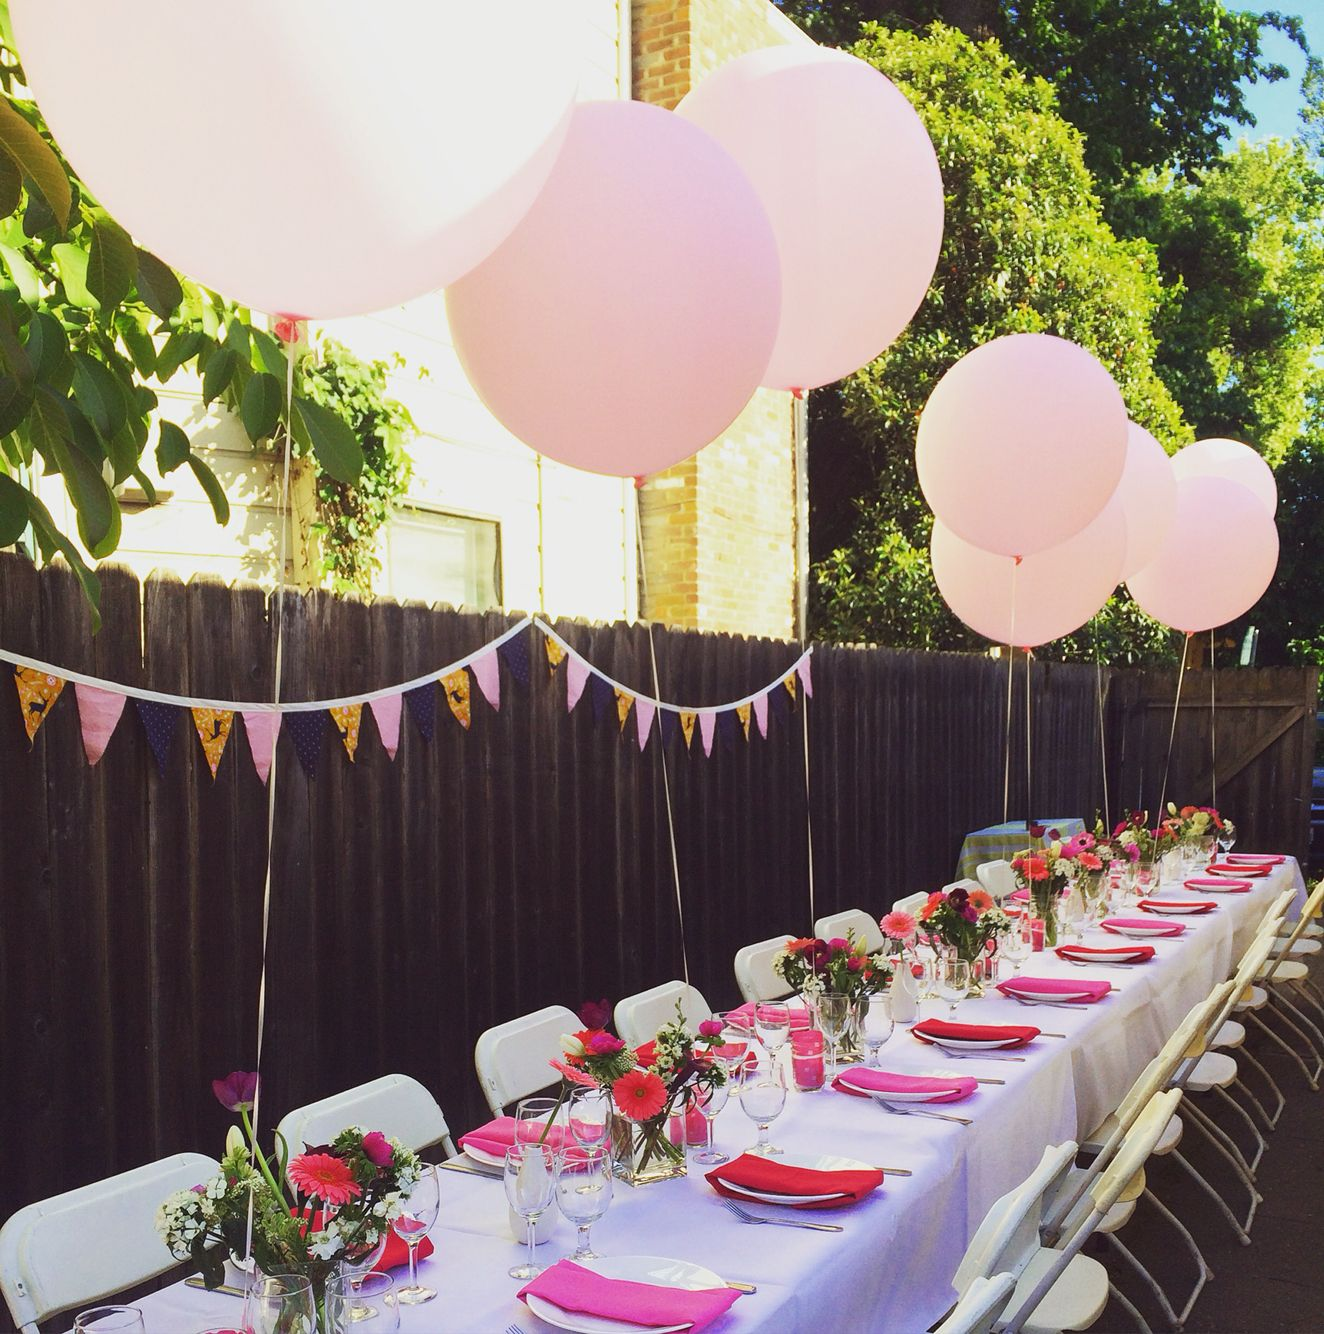 Backyard party with pink oversized balloons